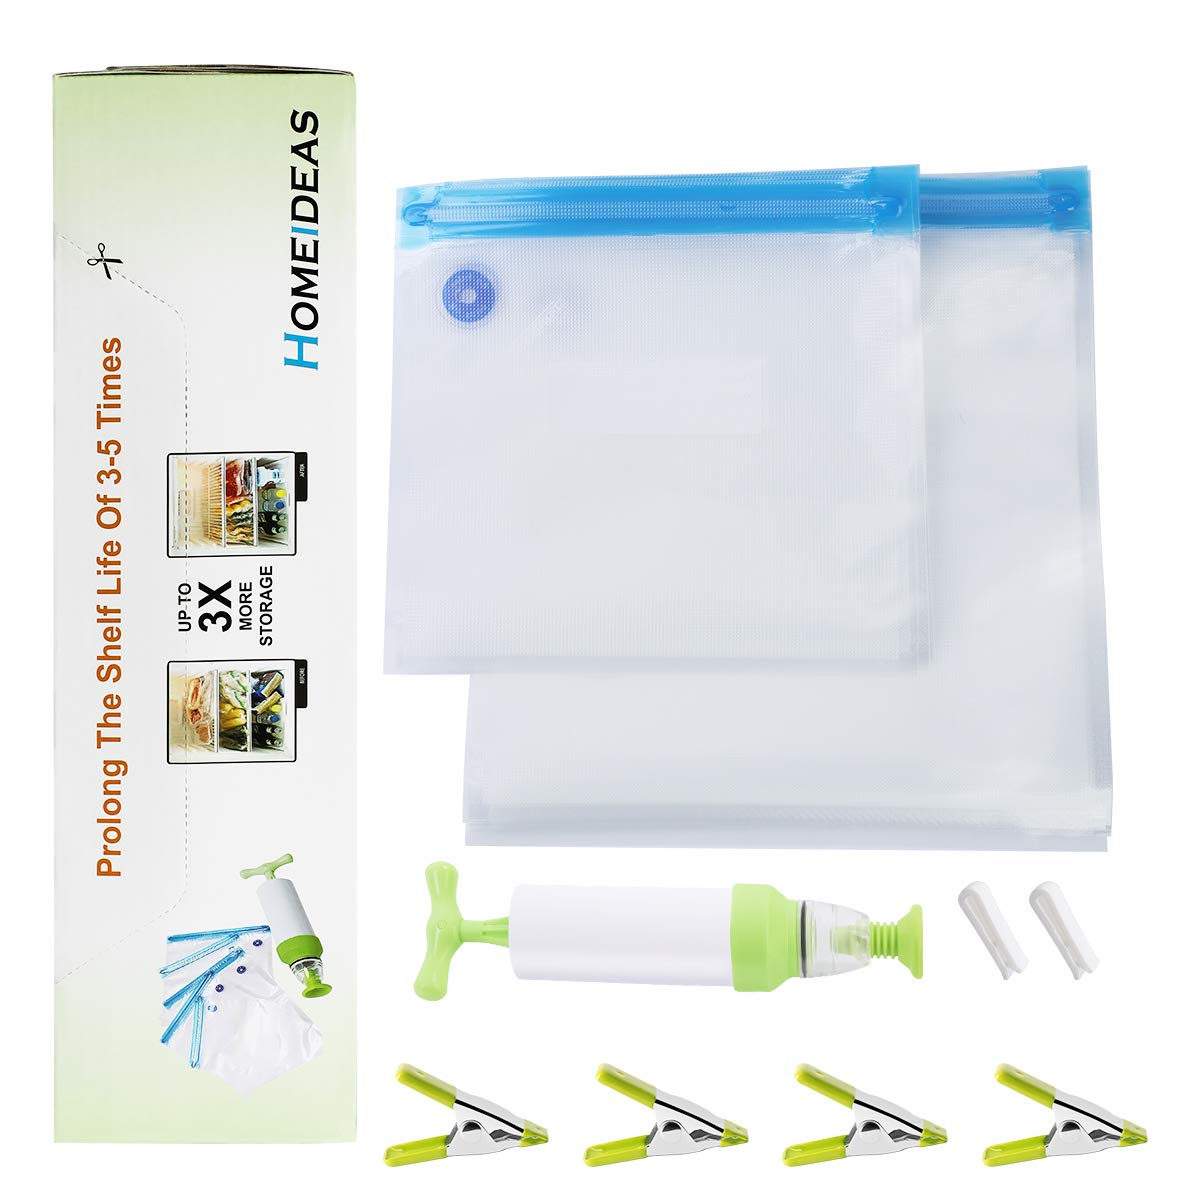 HOMEIDEAS 38 PCS Sous Vide Bags Kit Set For Anova Cookers - 30 Reusable BPA Free Food Vacuum Sealer Bags,1 Hand Pump, 4 Bag Sealing Clips and 3 Sous Vide Clips, Easy to Use, Practical for Food Storage